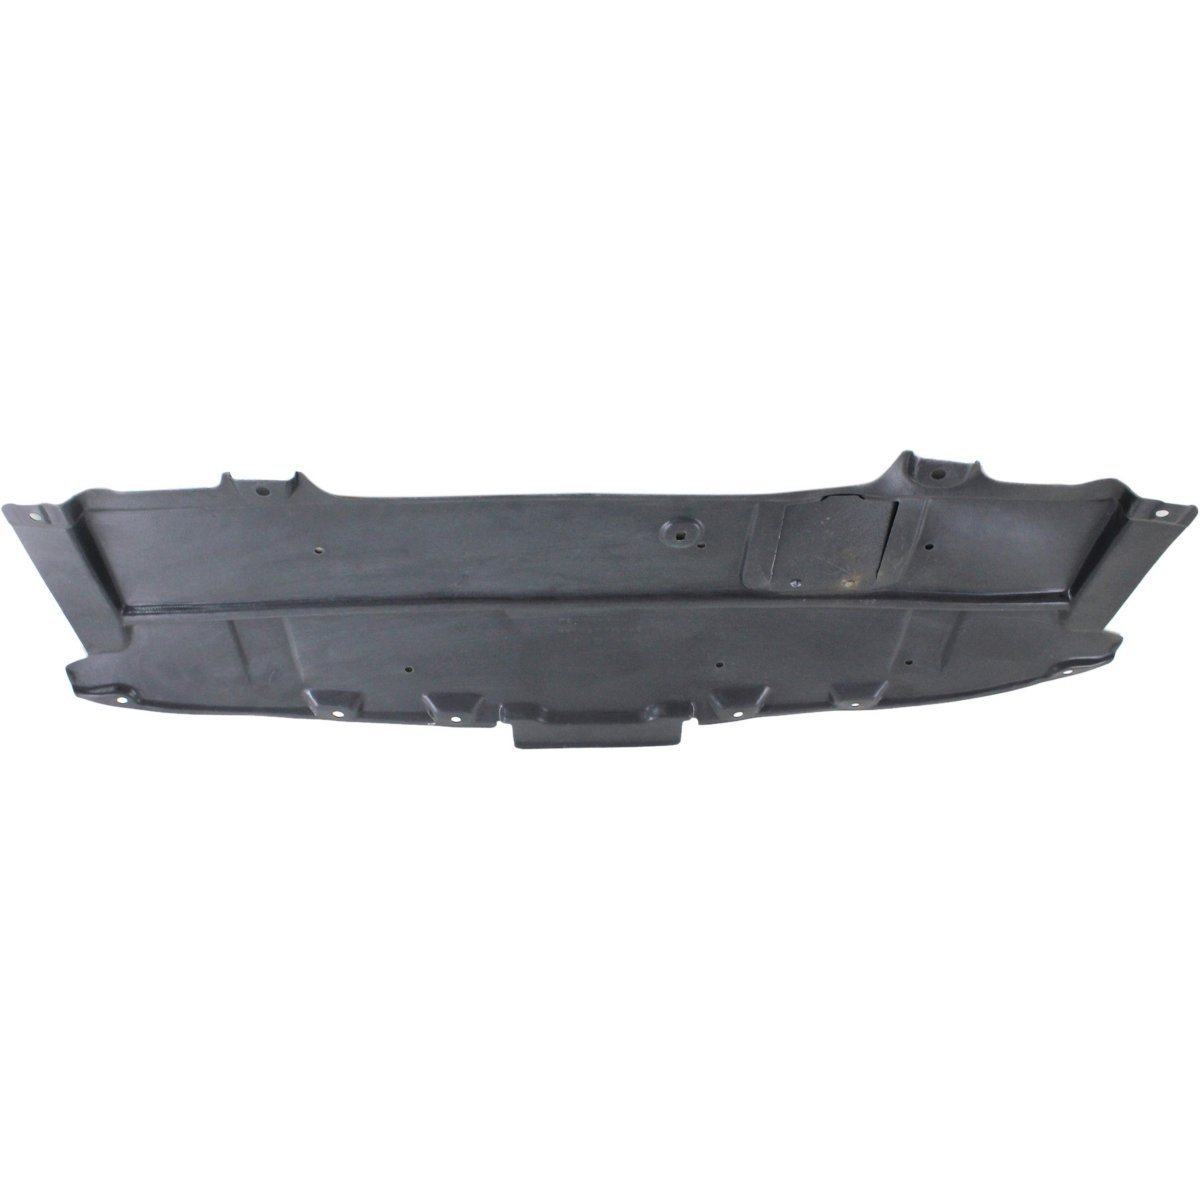 2013-2016 Mazda Cx5 Front Center Undercar Shield; Made Of Pp Plastic Partslink MA1228117C